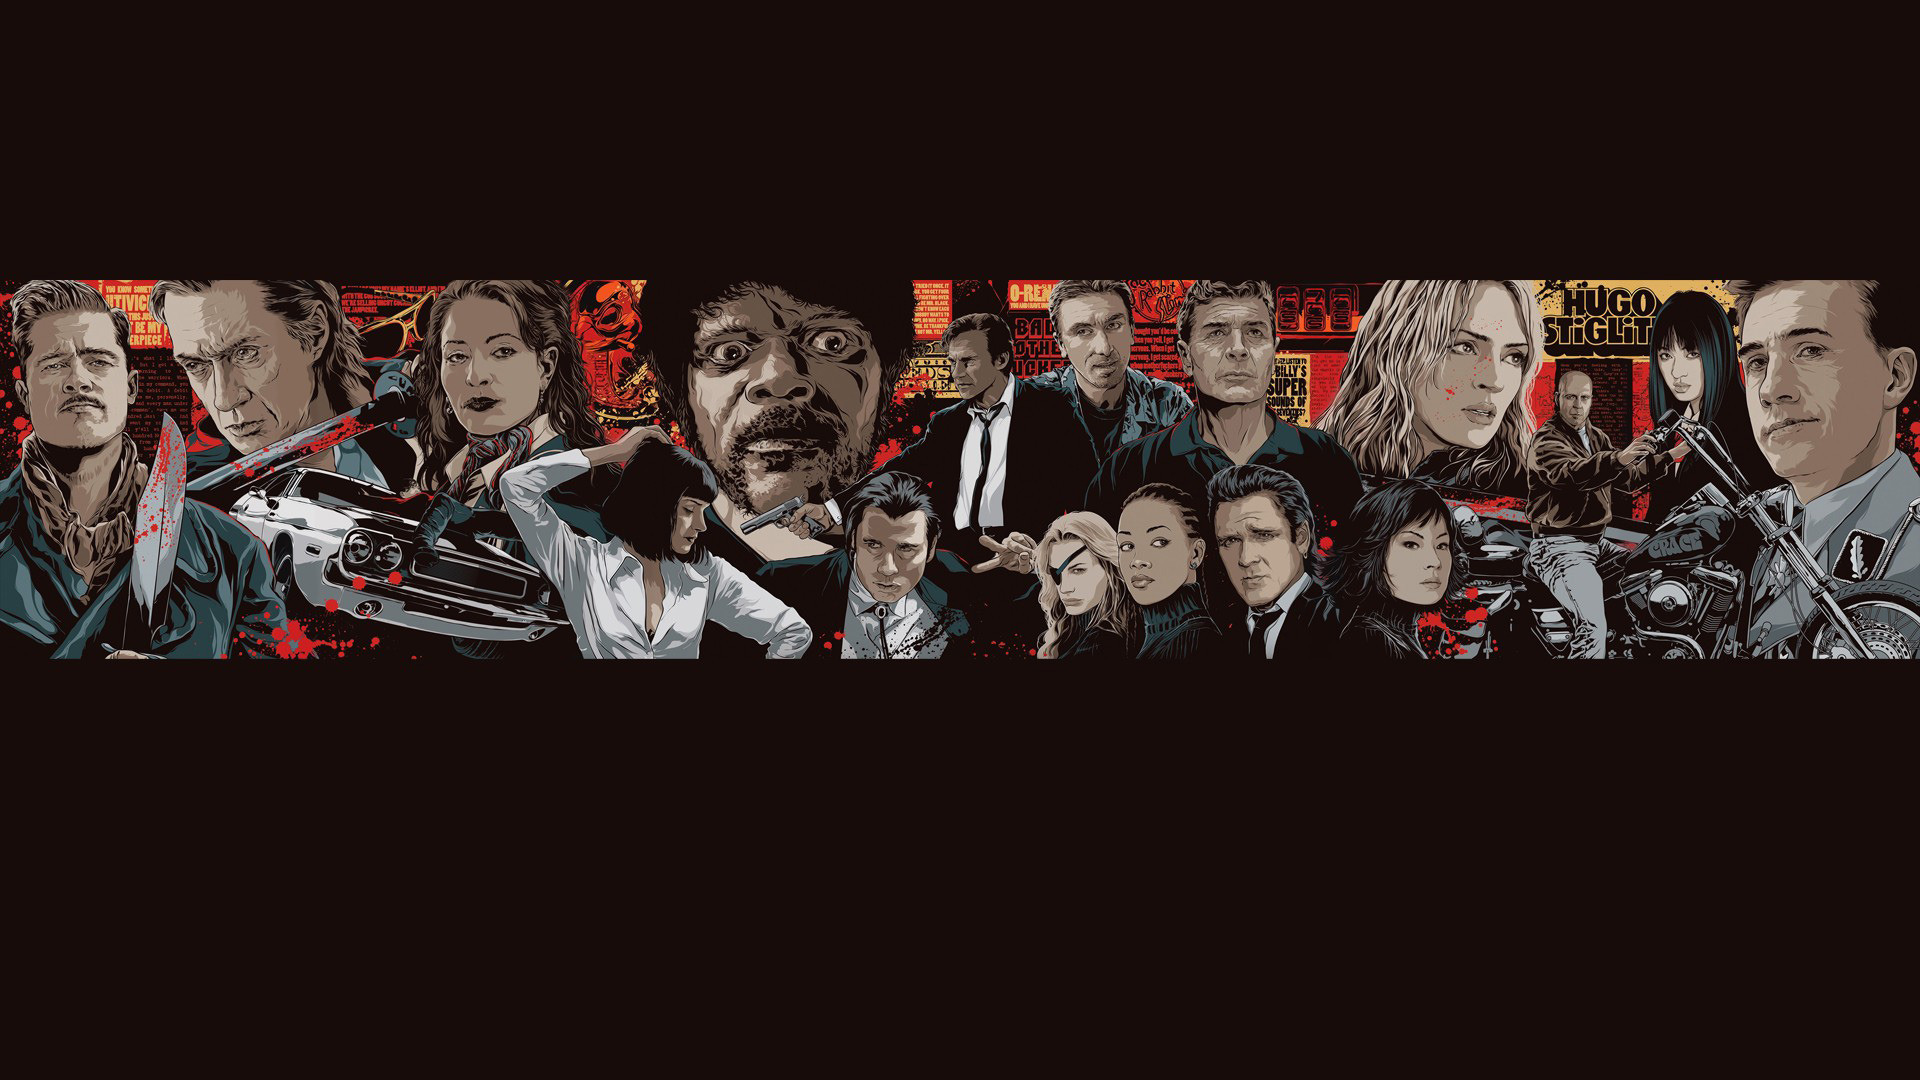 Pulp Fiction Movie Image source from this